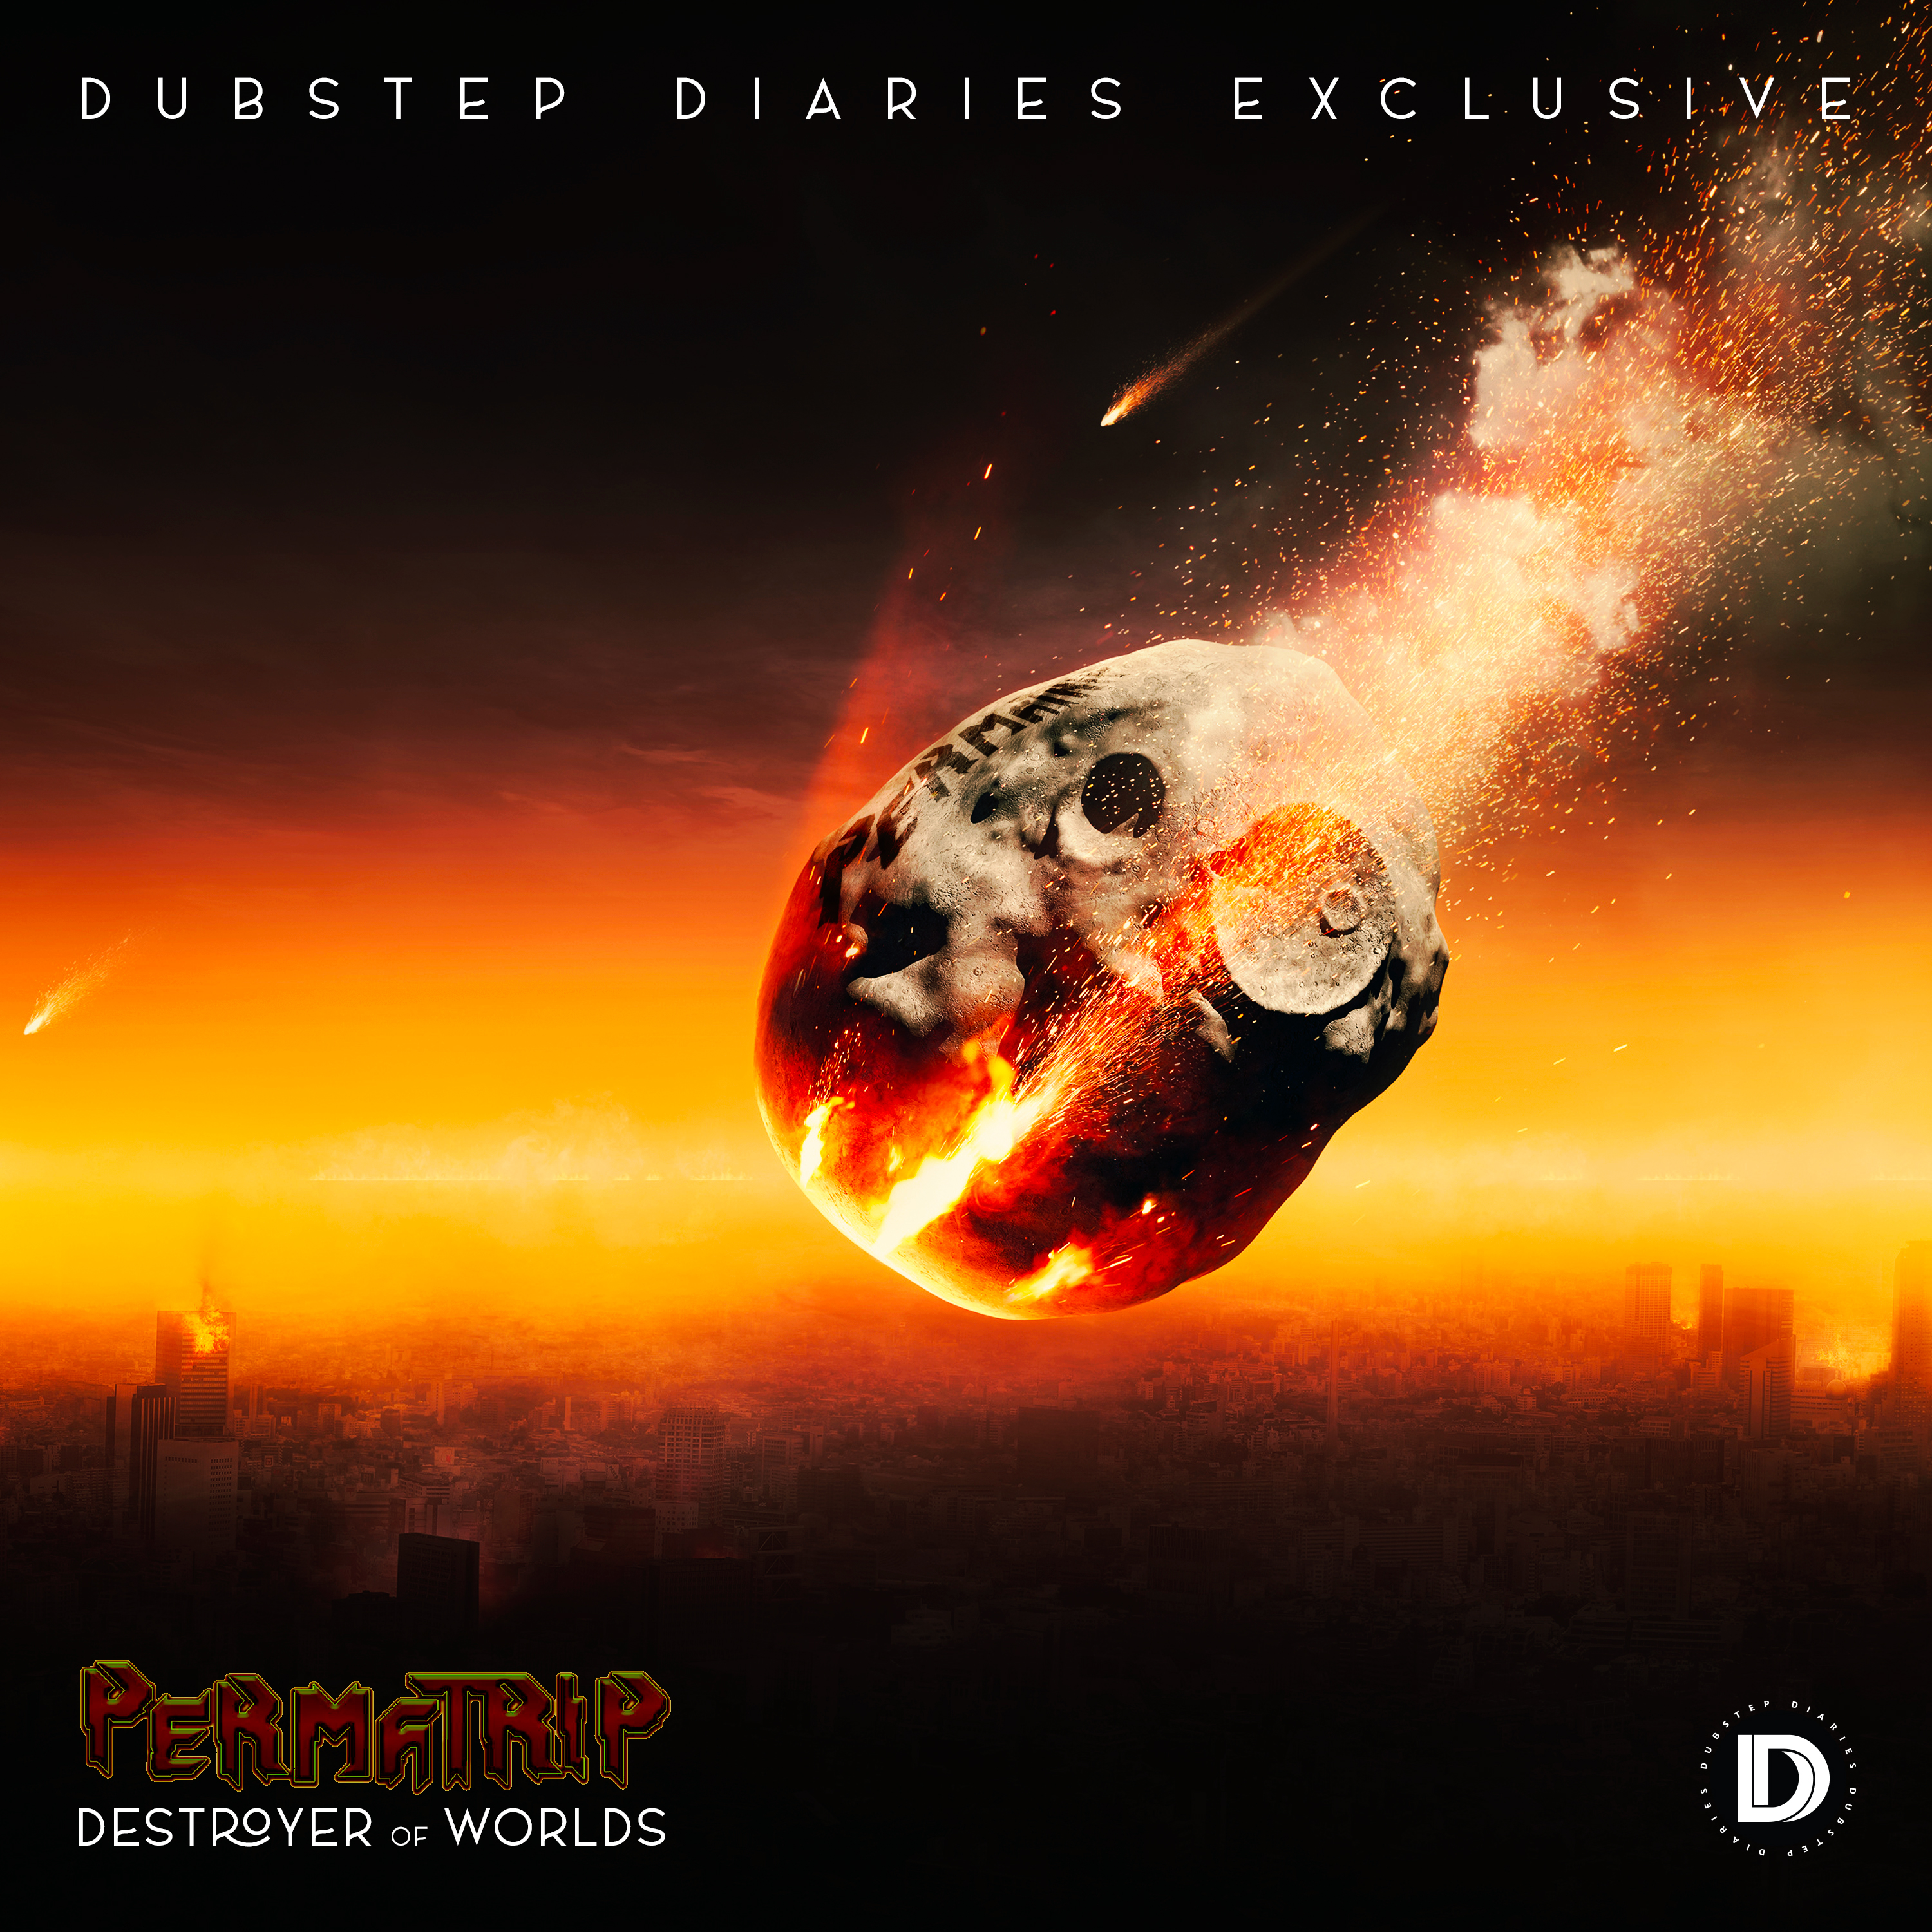 Perma-Trip - Destroyer Of Worlds [Dubstep Diaries Exclusive] Image